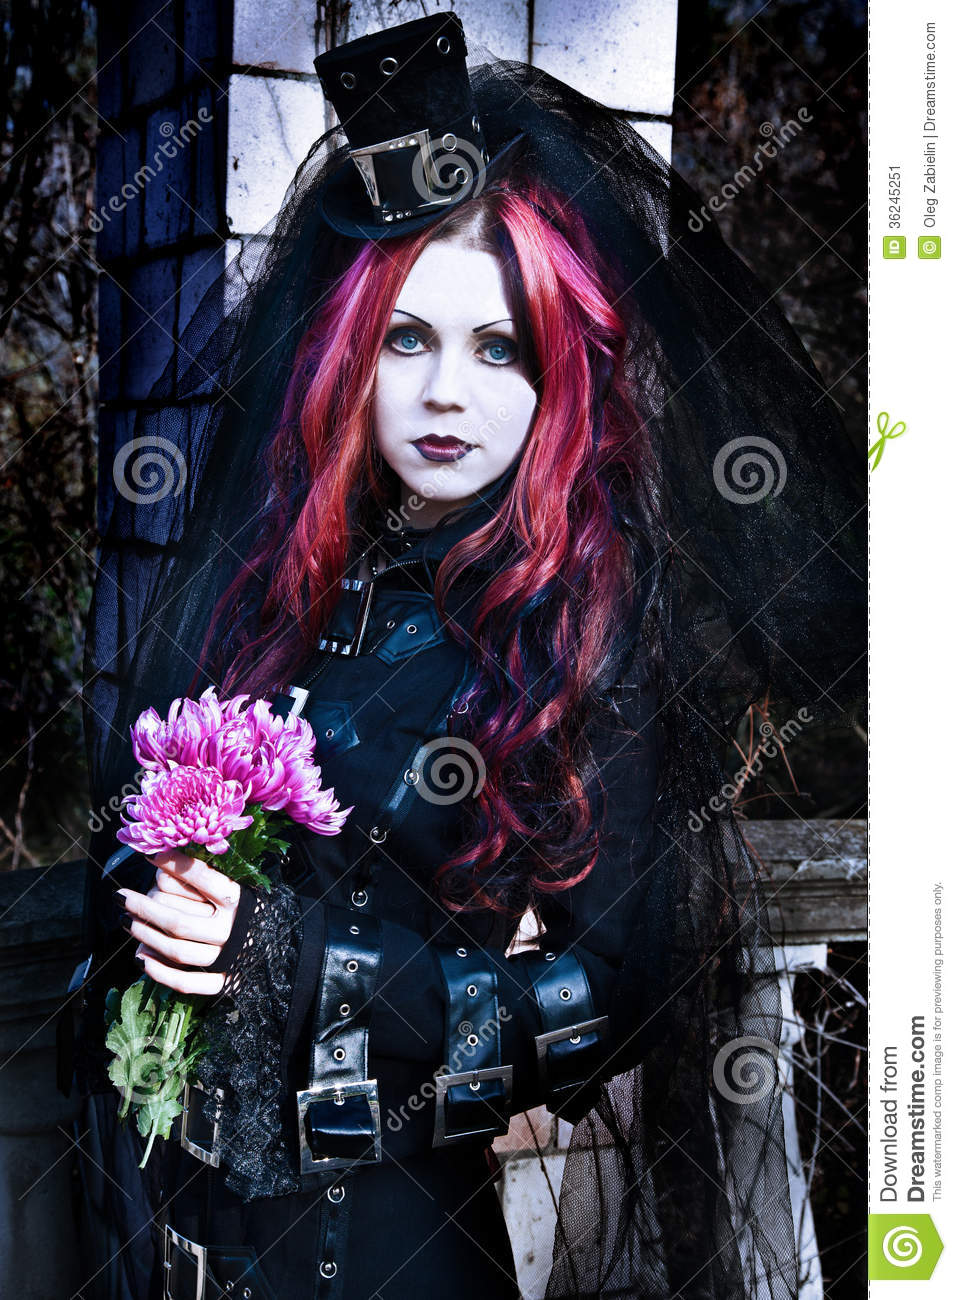 Violet gothic girls thumbs